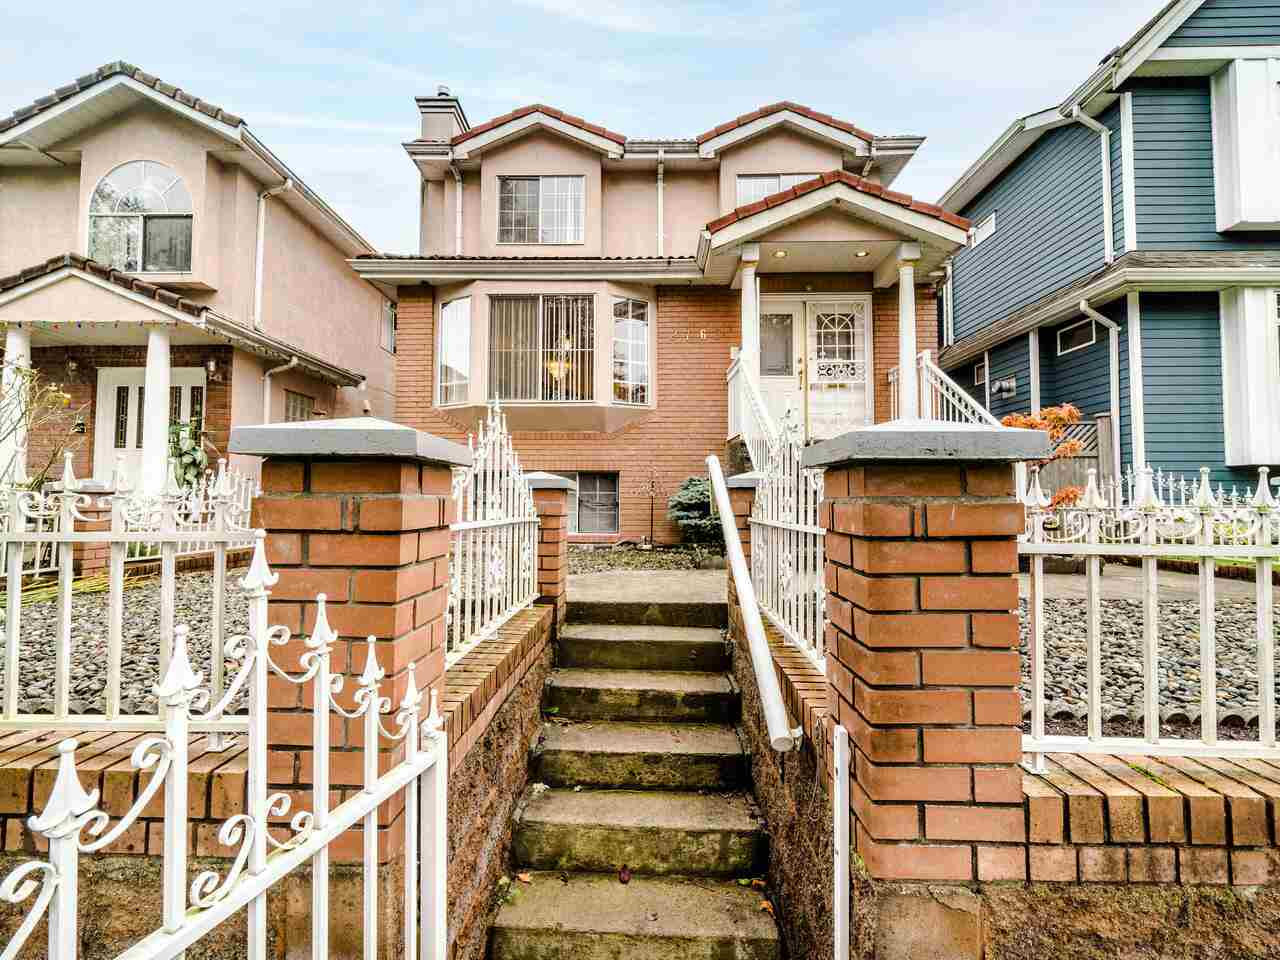 2762 E 21ST AVENUE - Renfrew Heights House/Single Family for sale, 4 Bedrooms (R2513971) - #1